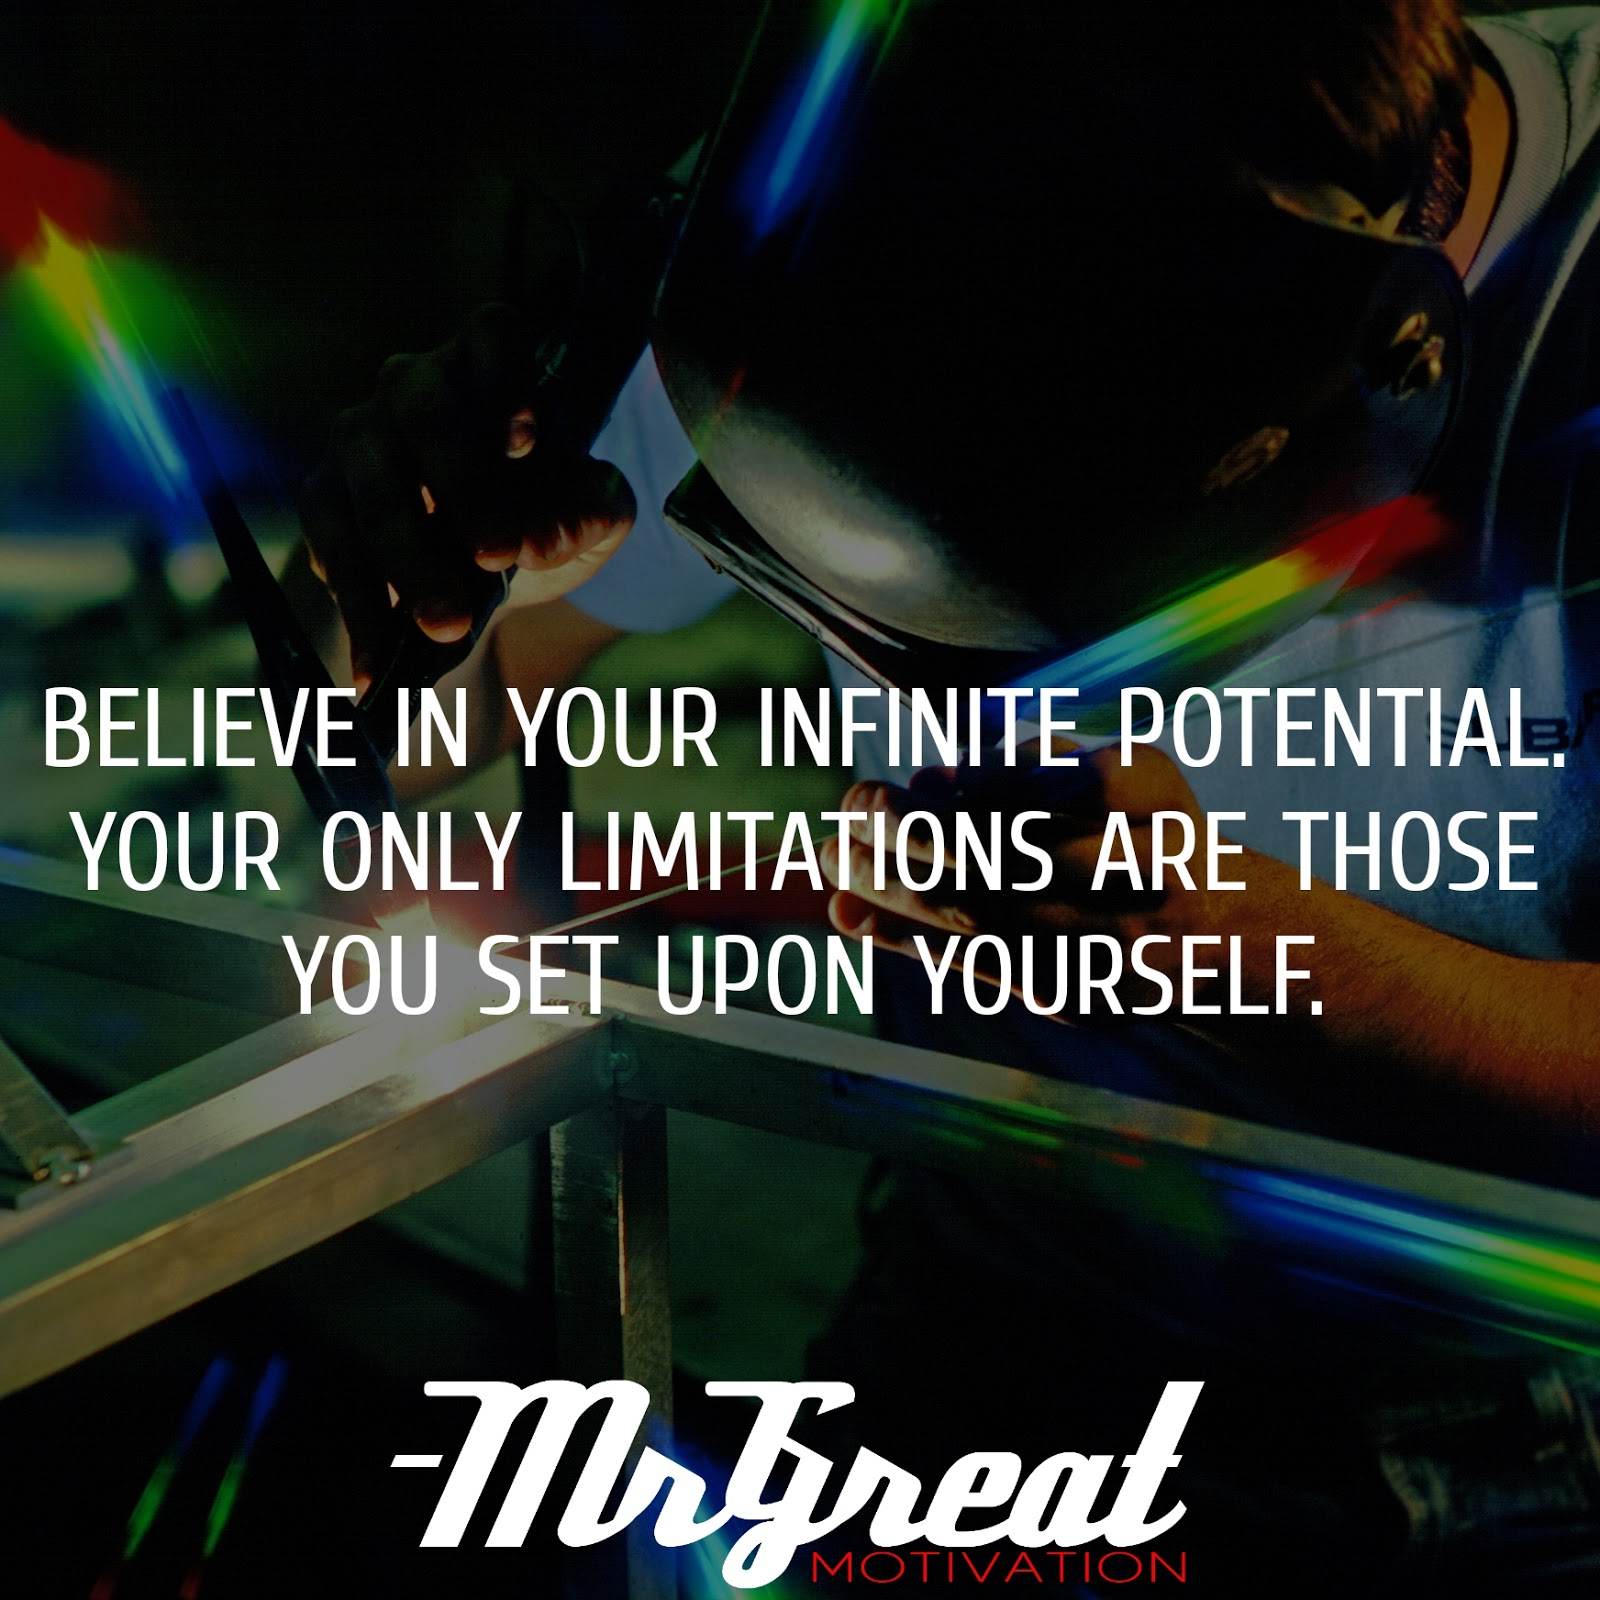 Believe in your infinite potential. Your only limitations are those you set upon yourself - Roy T. Bennett